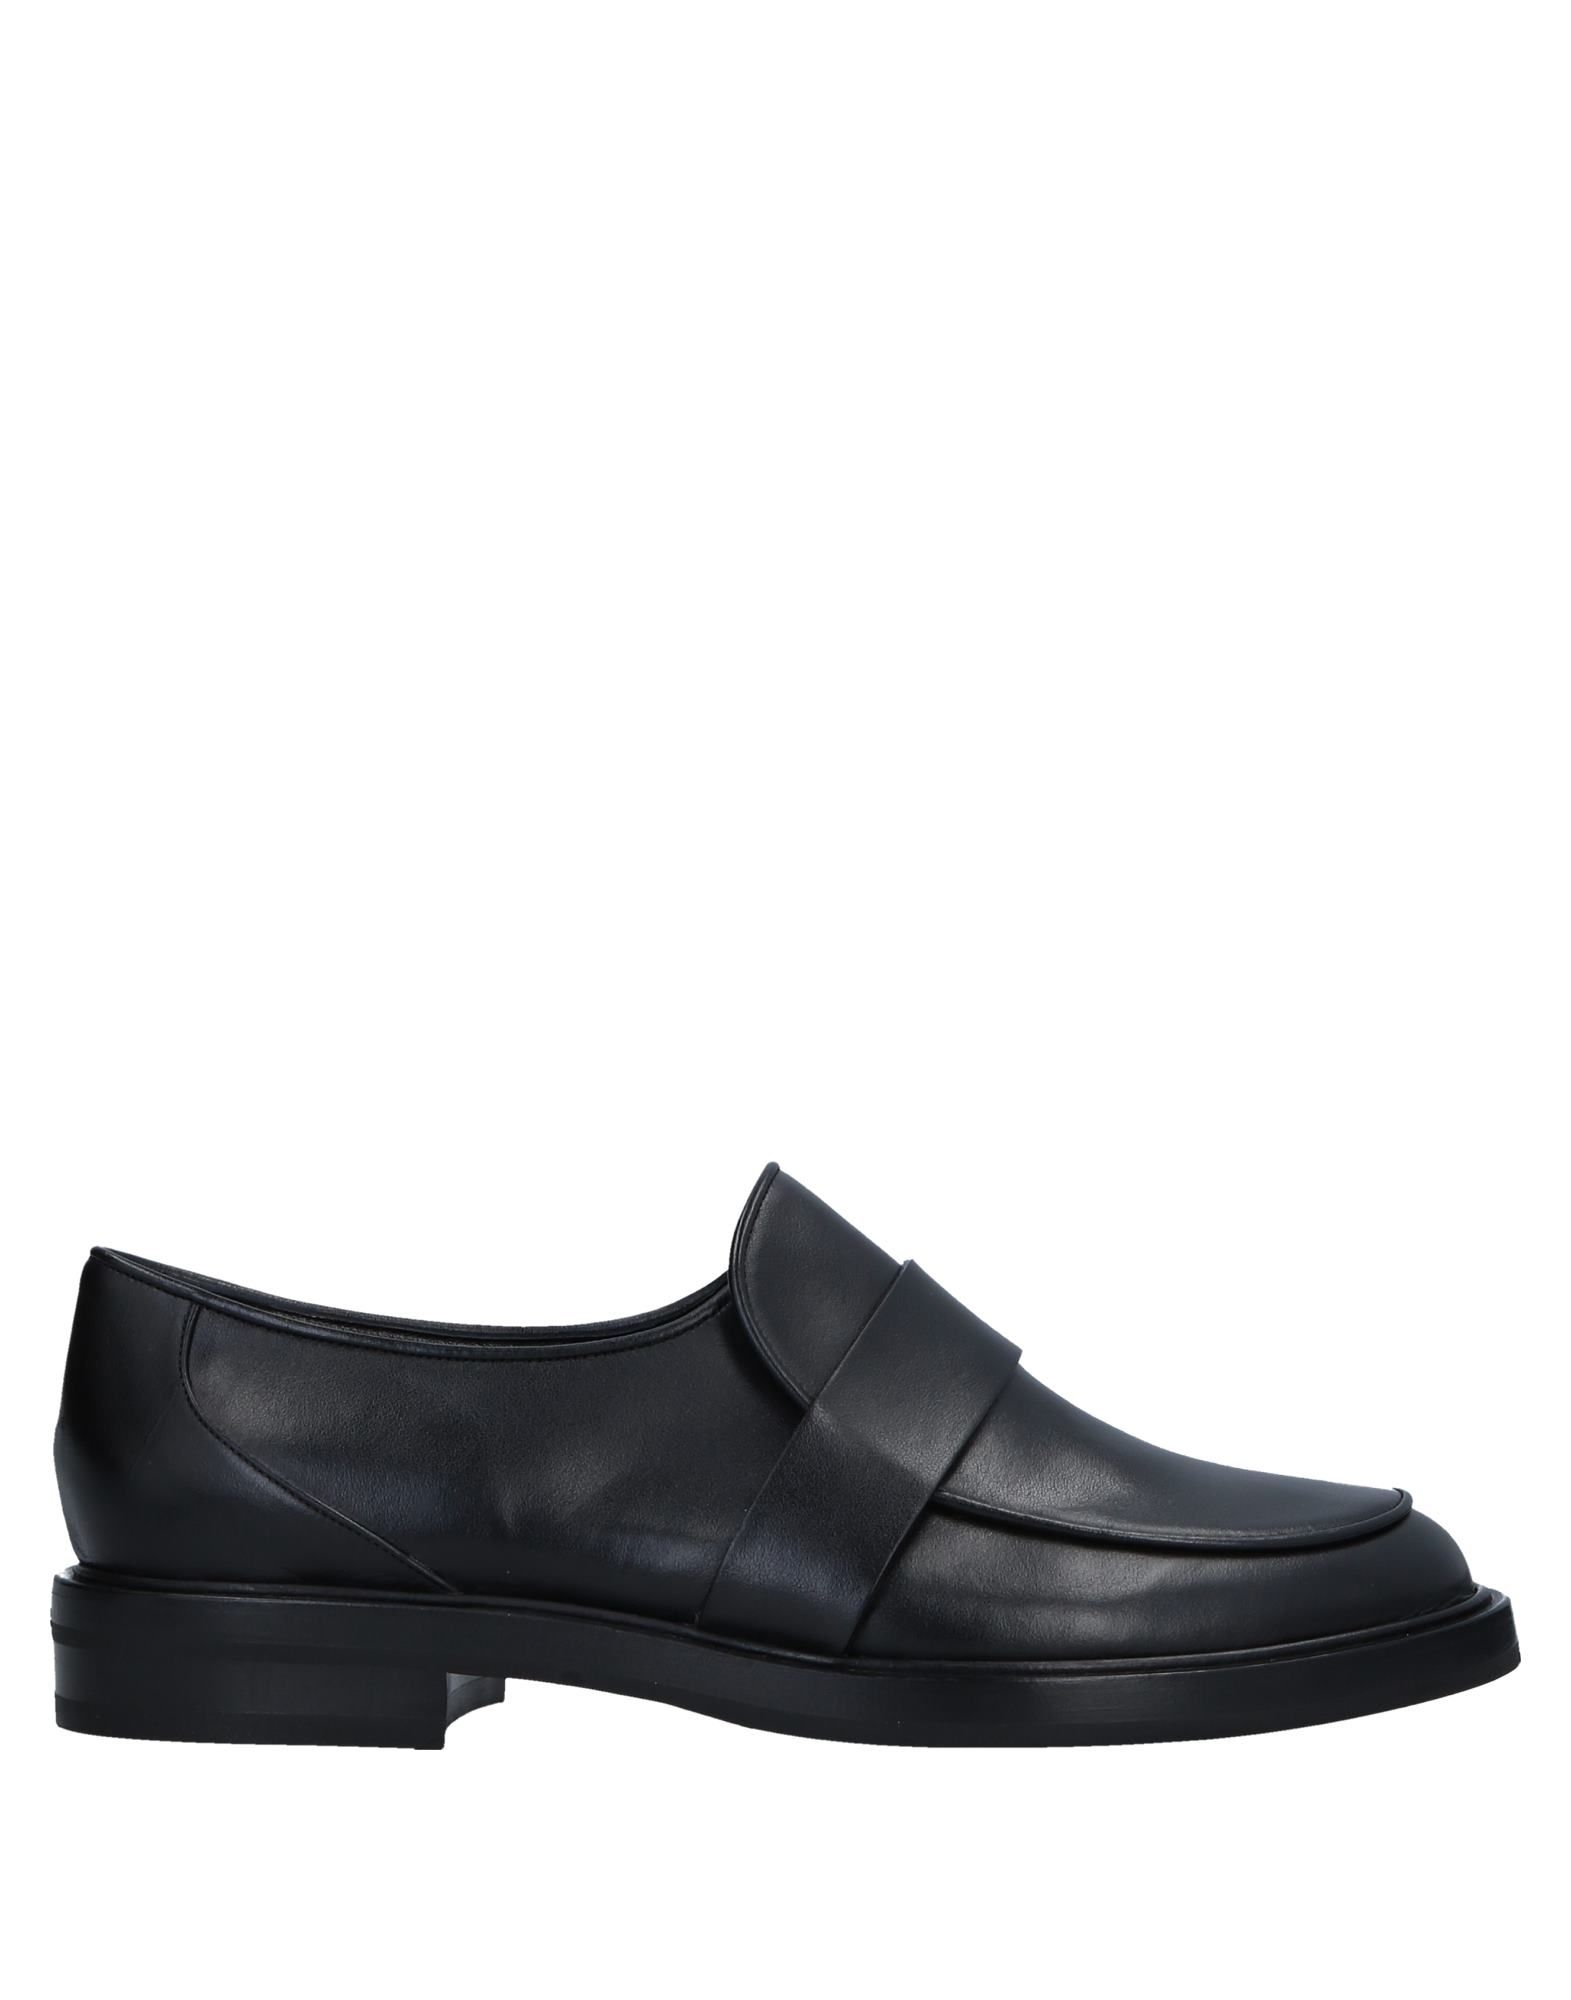 Casadei Loafers - Women Casadei United Loafers online on  United Casadei Kingdom - 11544169HA d84bbc